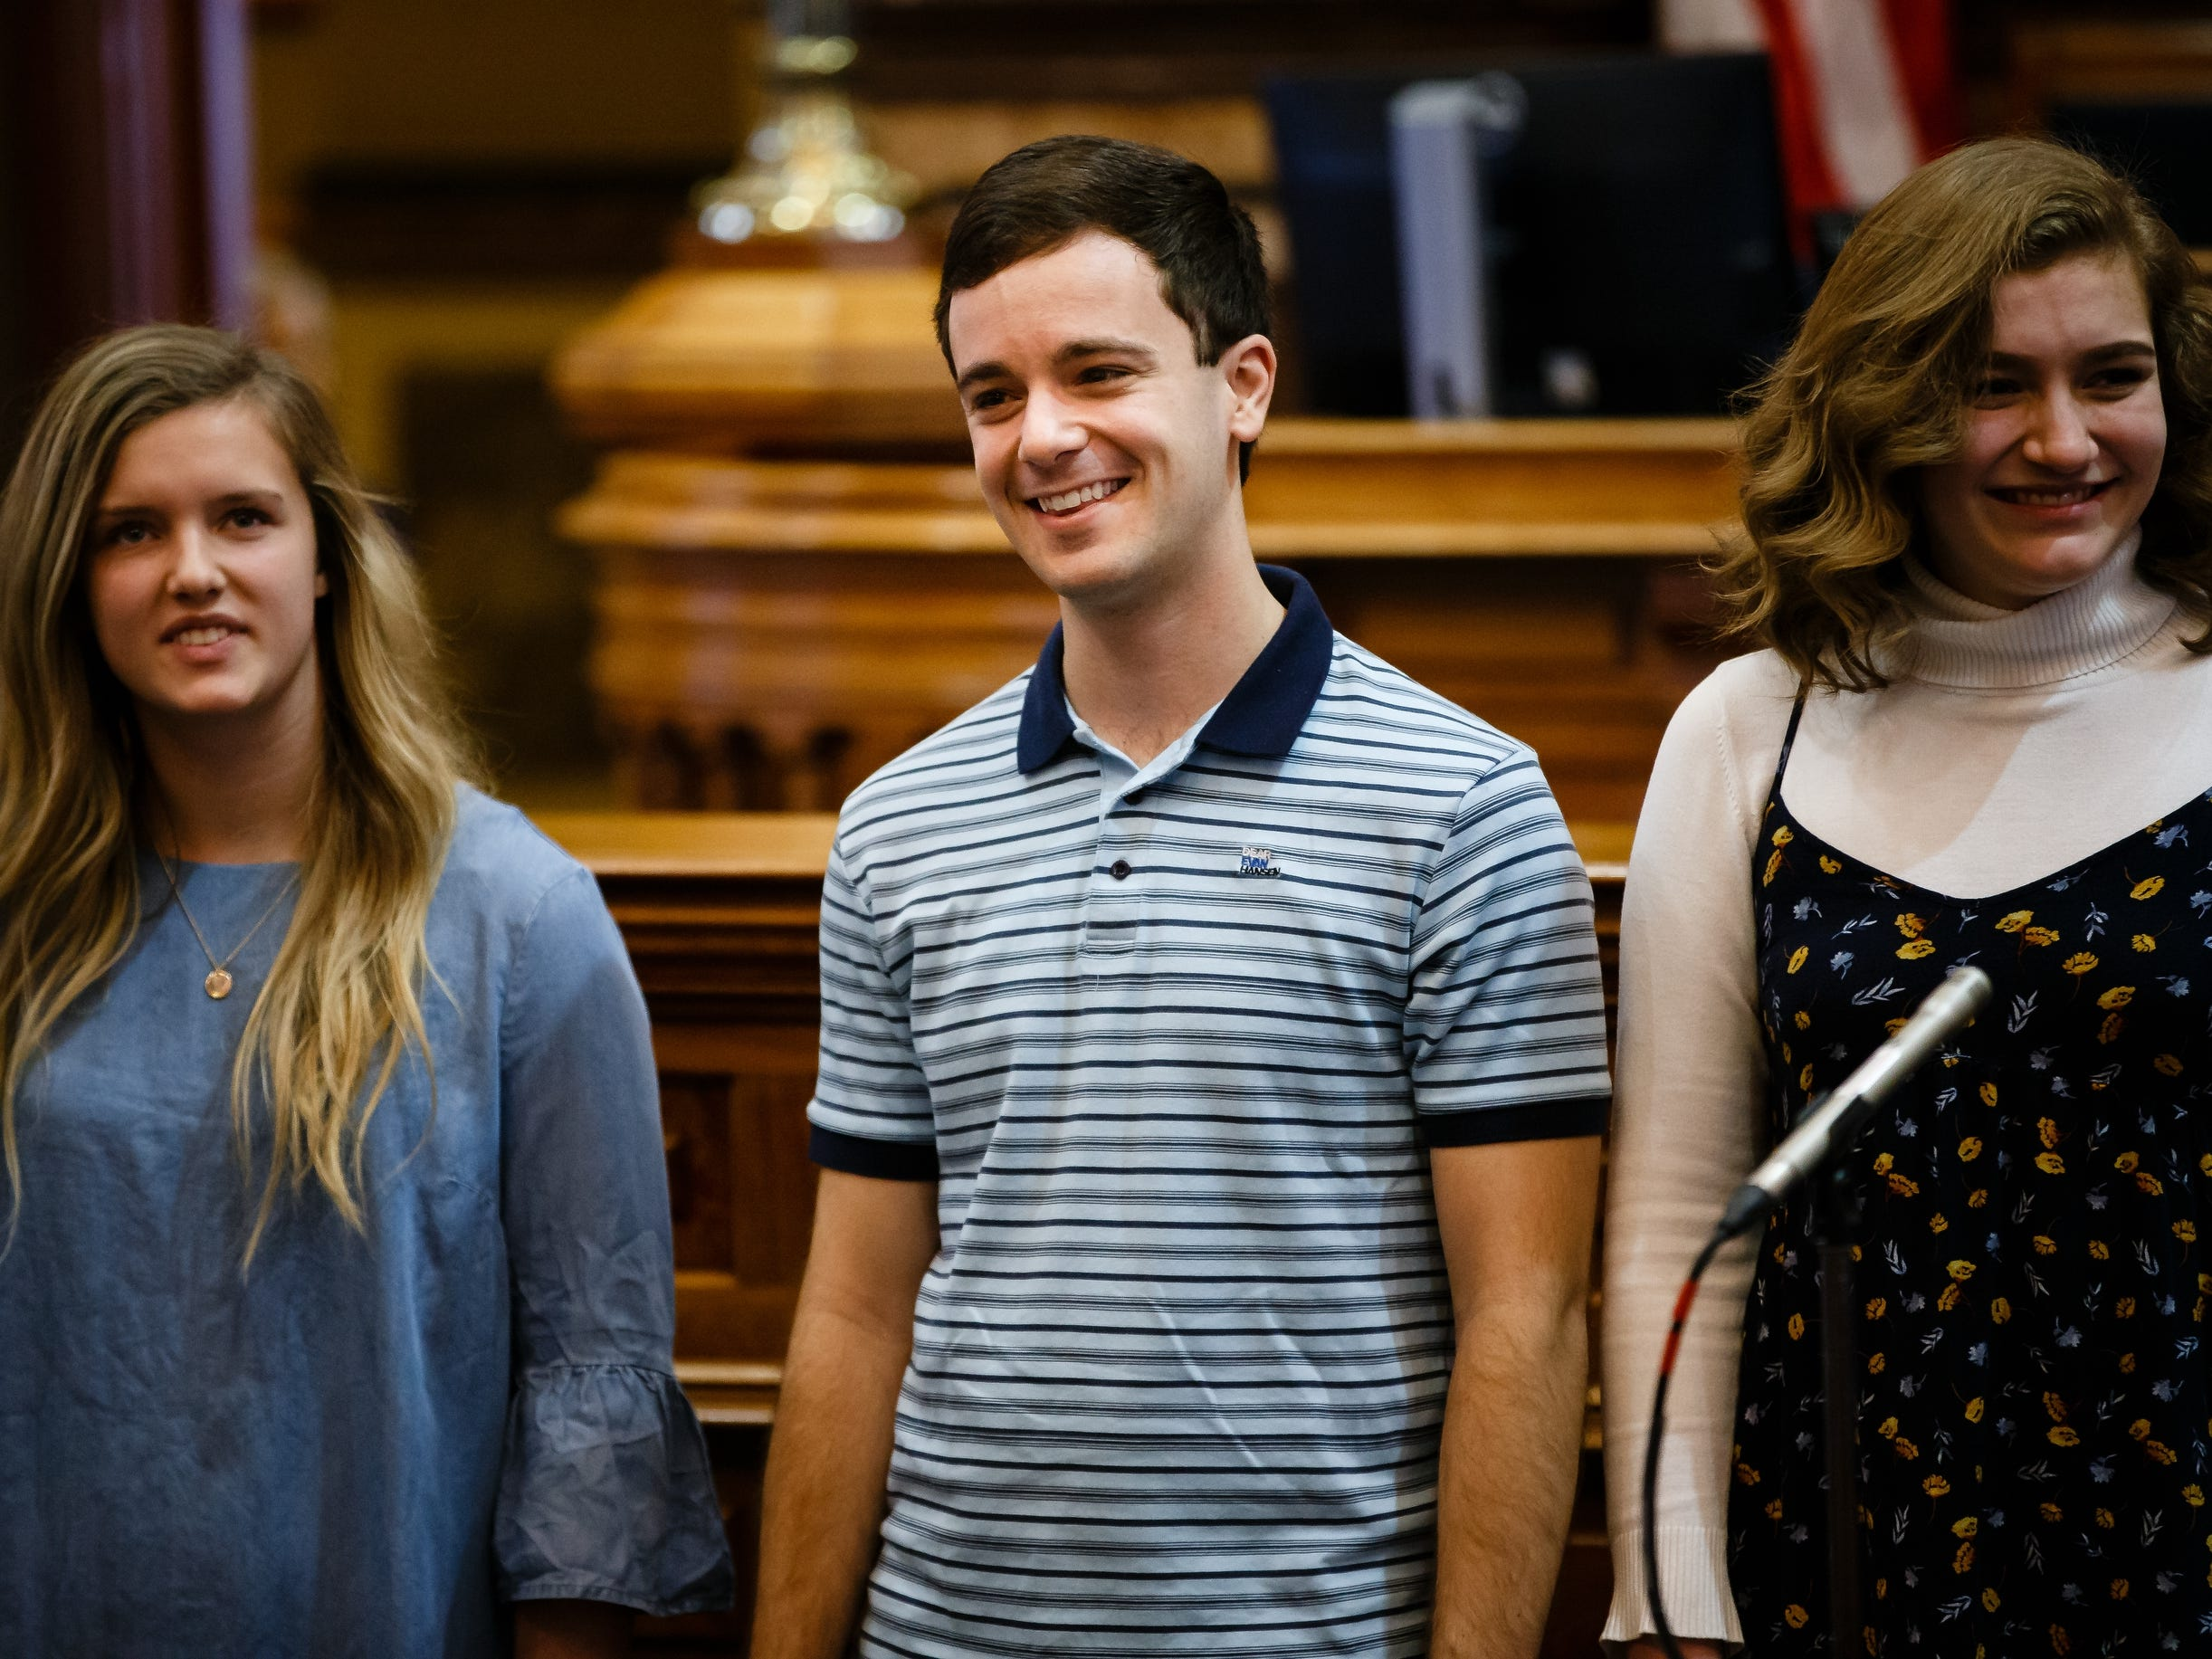 """Actor Stephen Christopher Anthony, center, performs the song """"You Will Be Found"""" from the Broadway show Dear Evan Hansen with the Waukee High School Avenue Jazz choir at the Iowa State Capitol on Wednesday, Feb. 6, 2019, in Des Moines."""